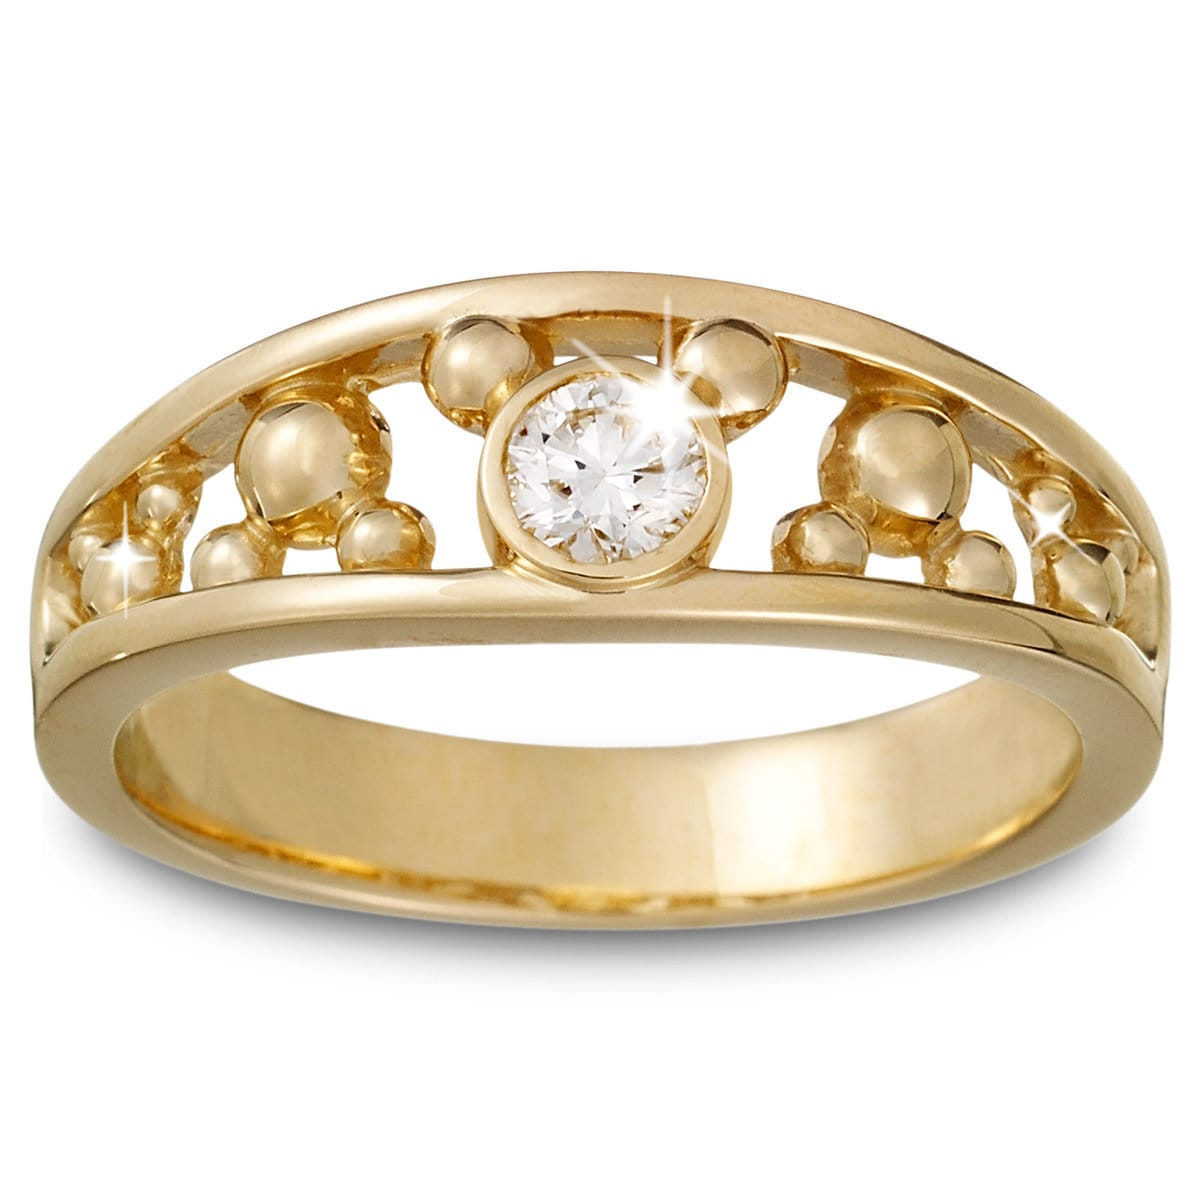 diamond mickey mouse icon ring for men 14k yellow gold - Mickey Mouse Wedding Ring